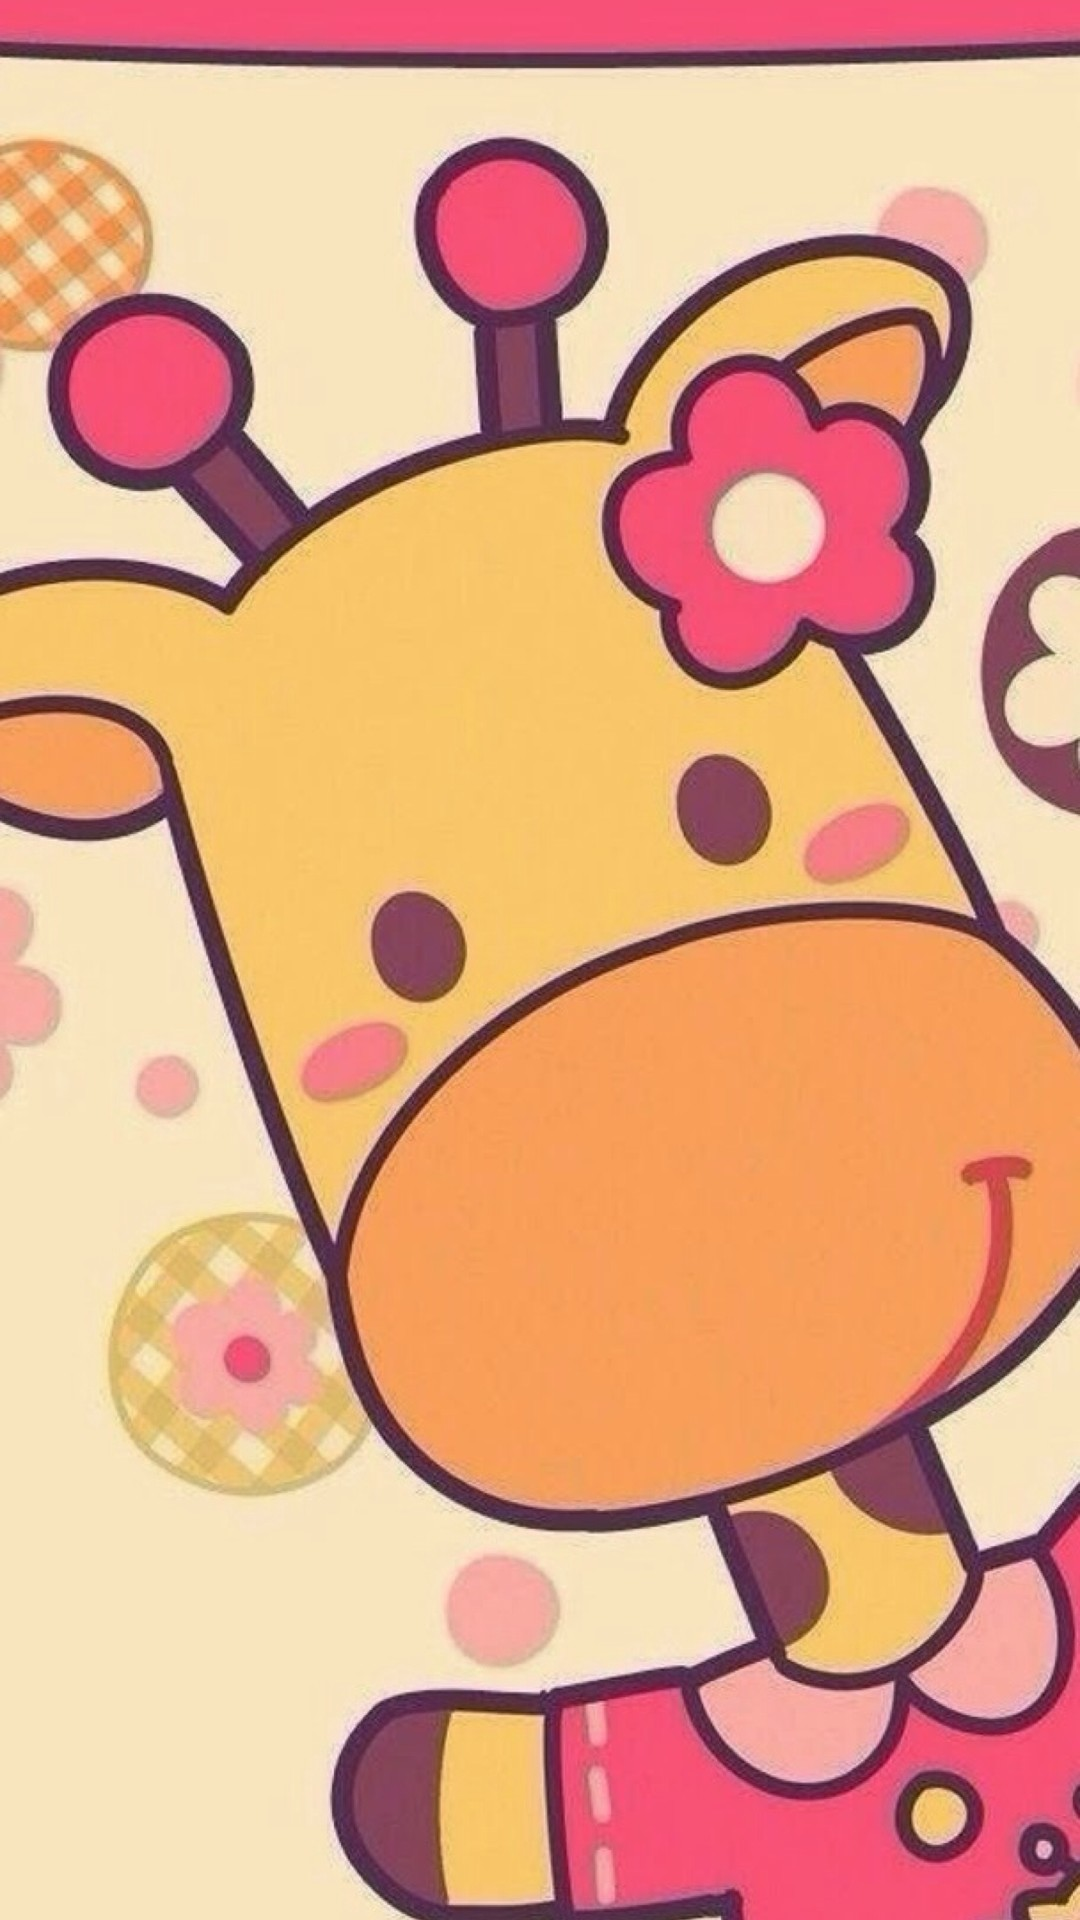 1080x1920 Cute giraffe iphone wallpaper - photo#9